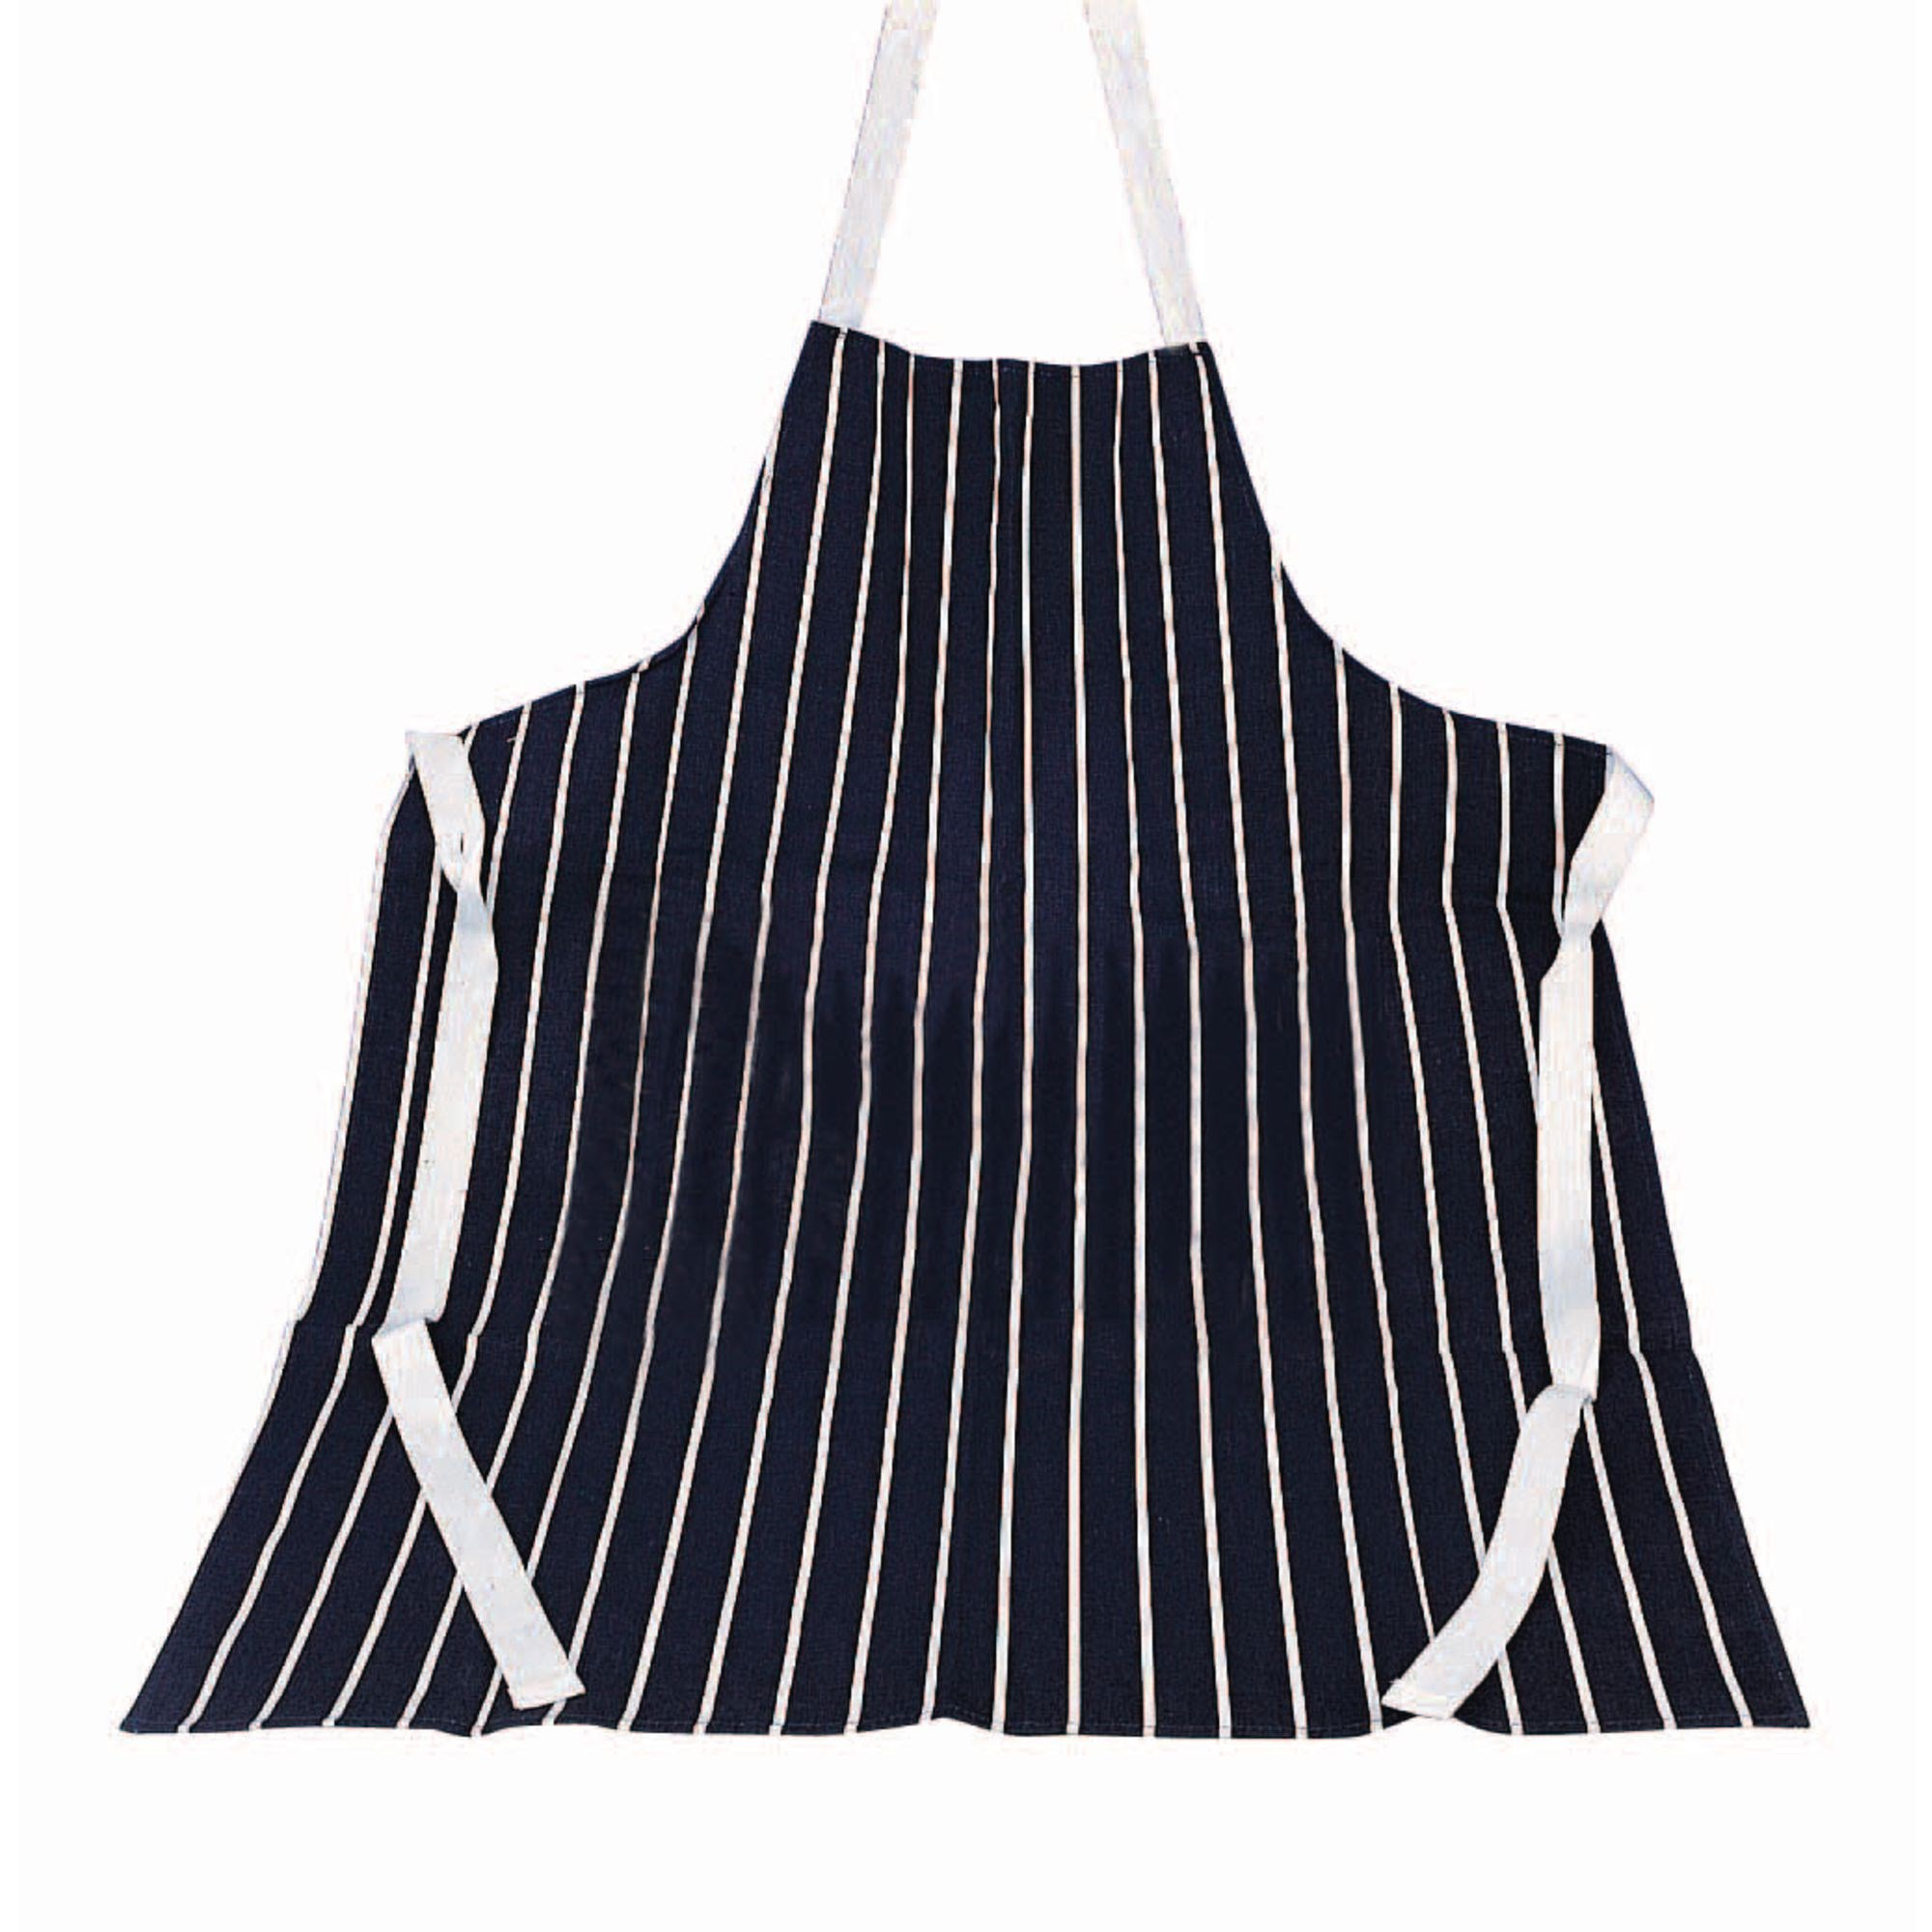 Cotton Drill Apron Navy White 61x81cm